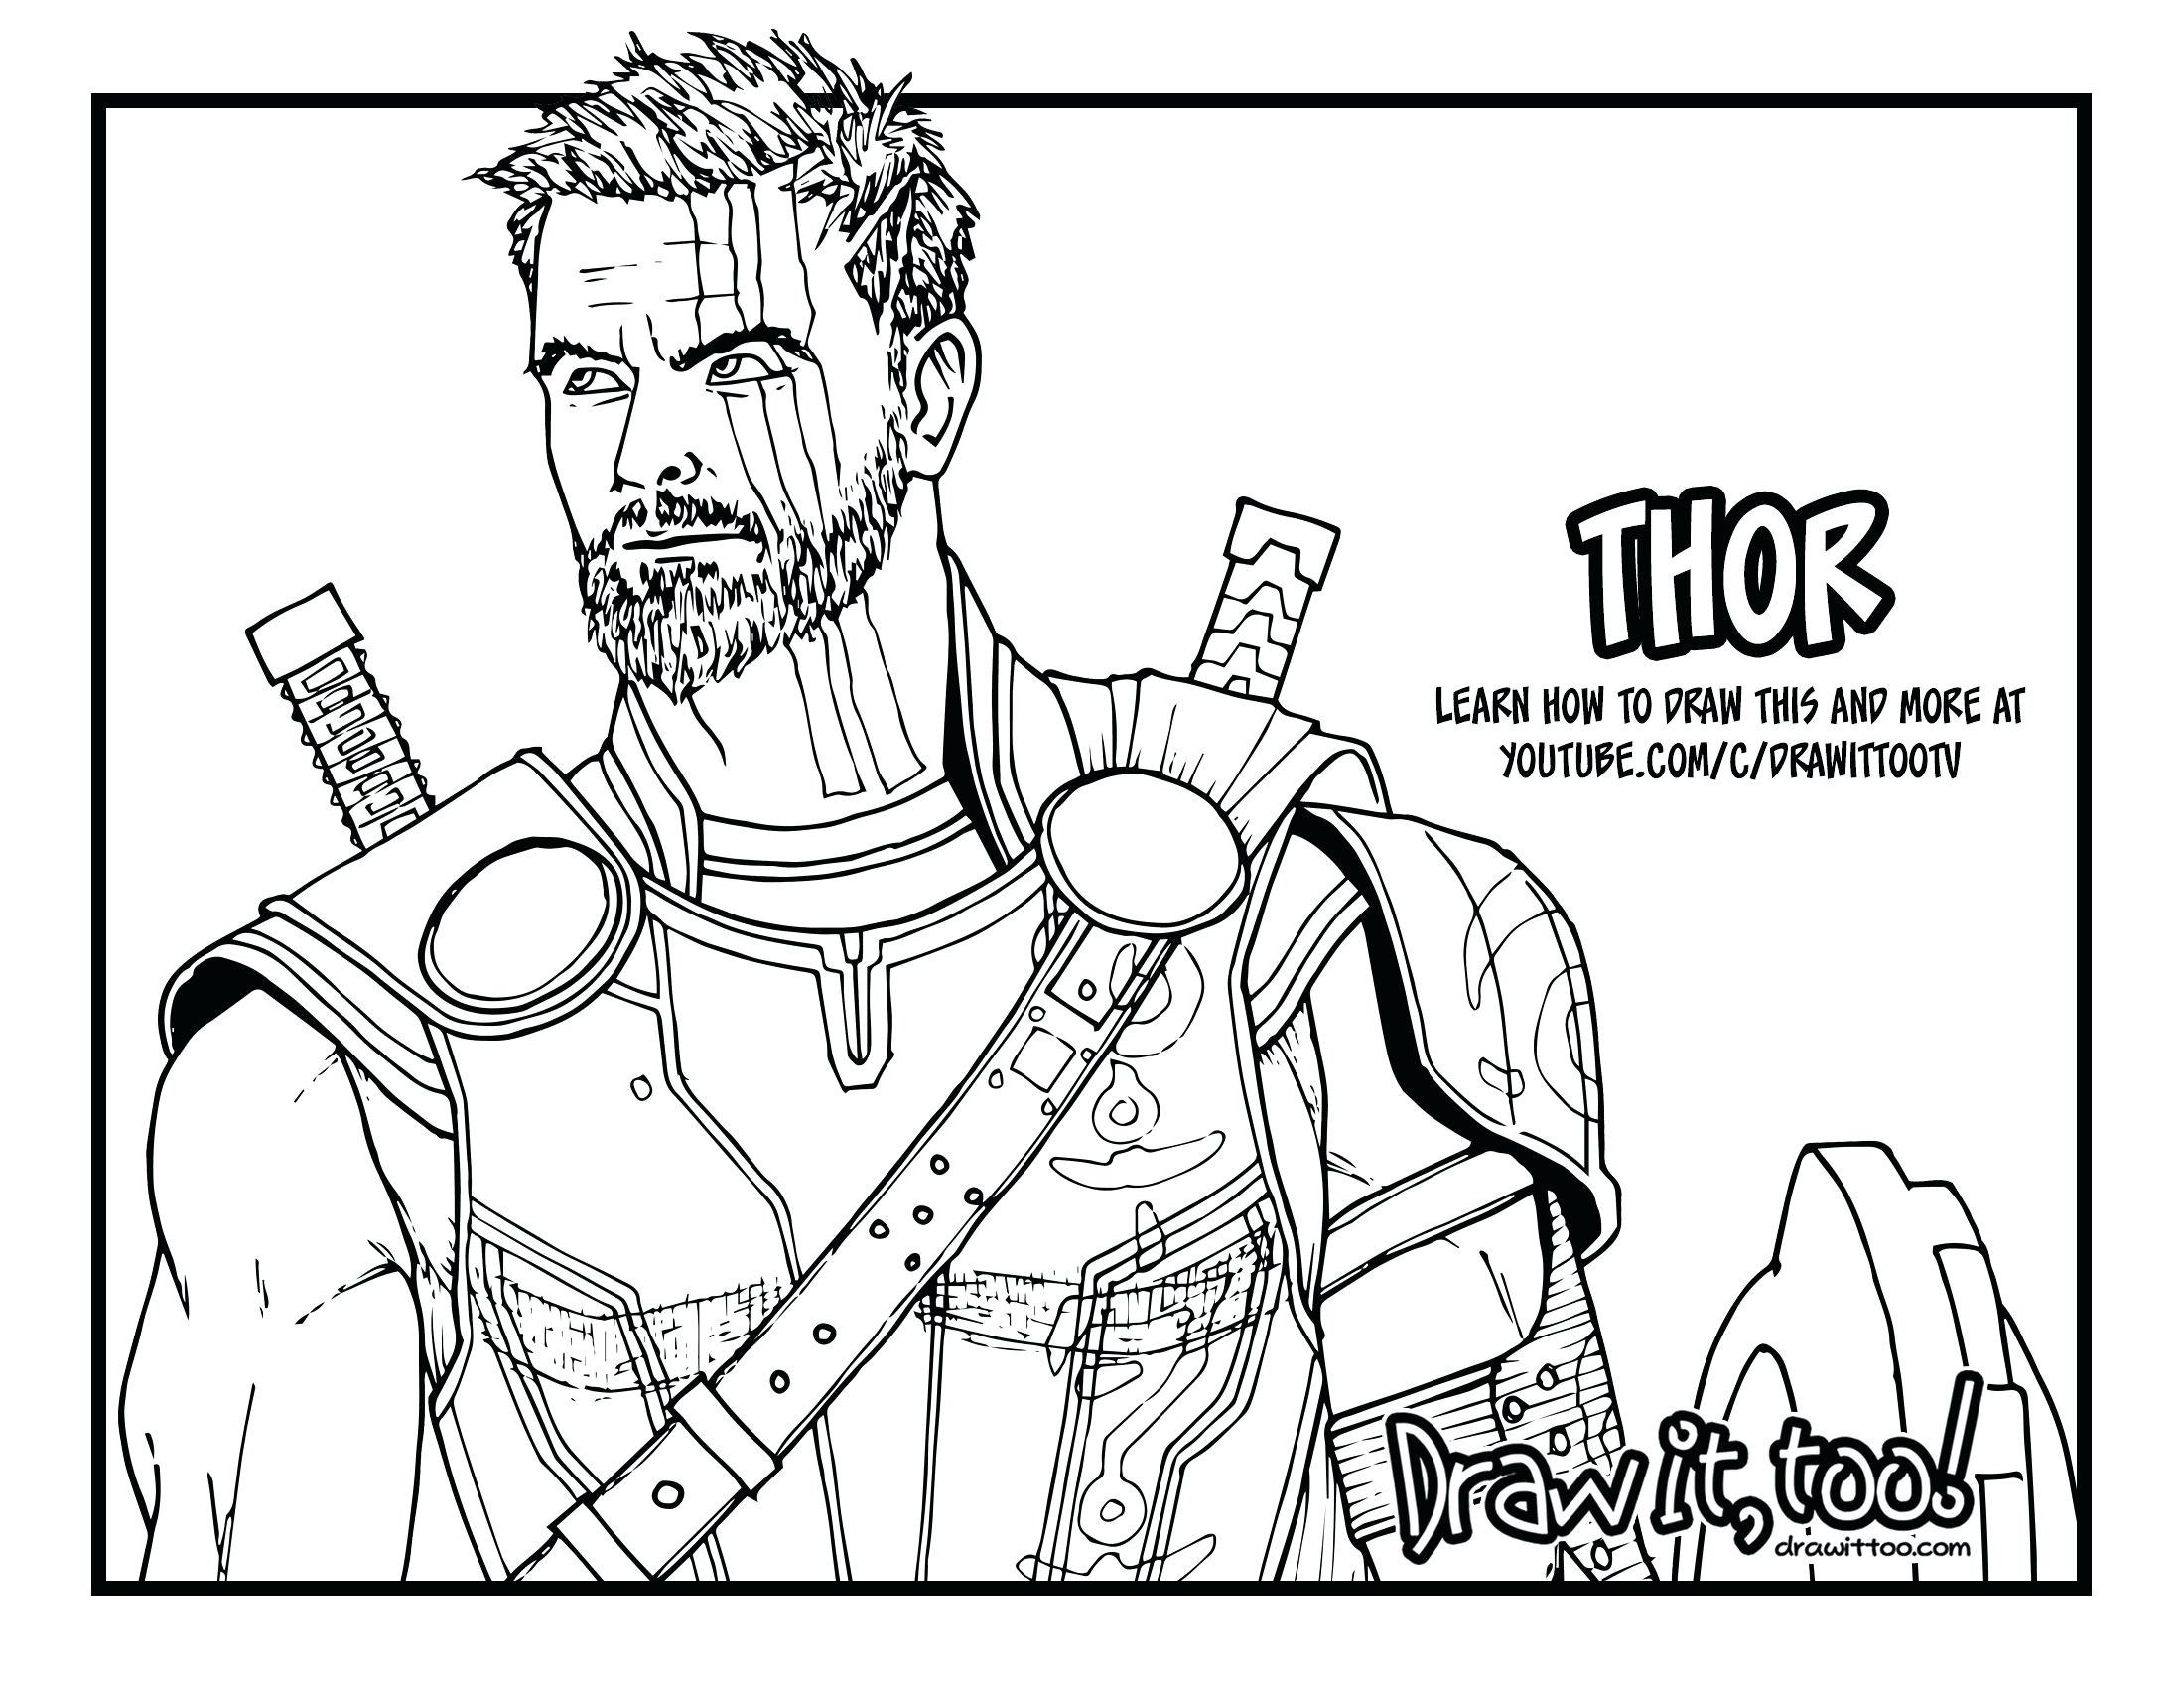 Thor Coloring Pages Thor Coloring Pages 1050c297875 - New Thor Coloring Pages , HD Wallpaper & Backgrounds